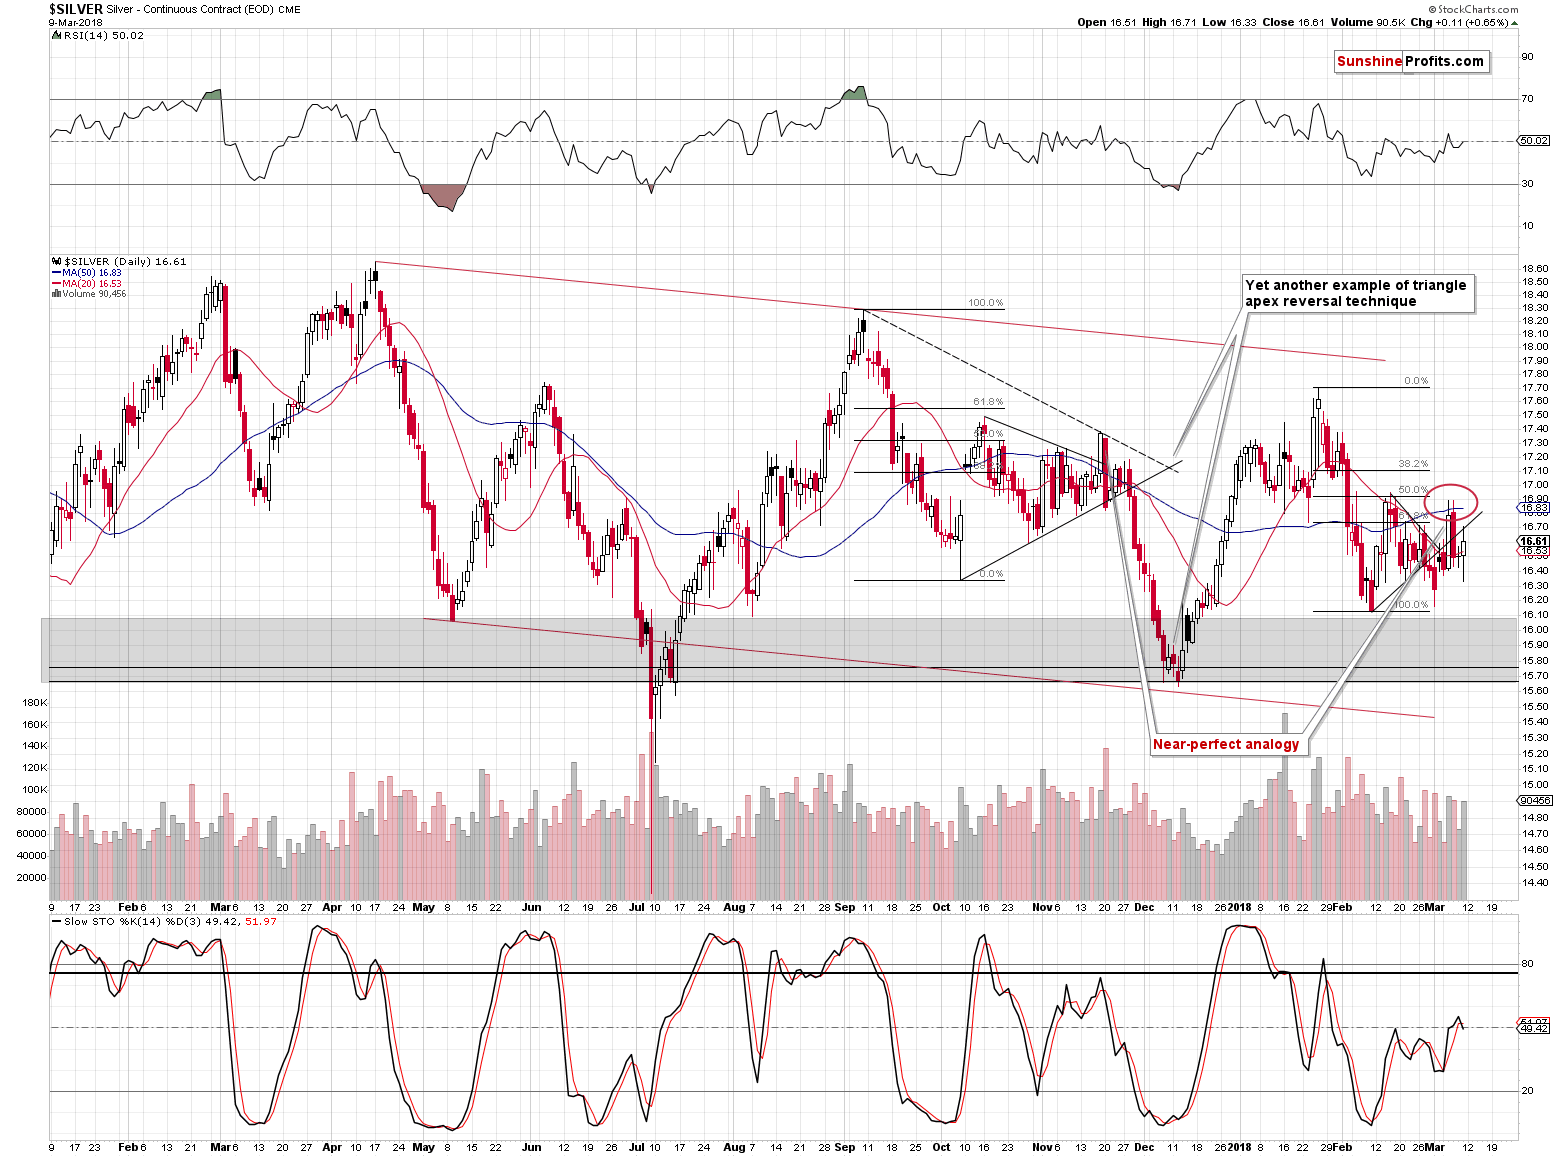 Silver short-term price chart - Silver spot price